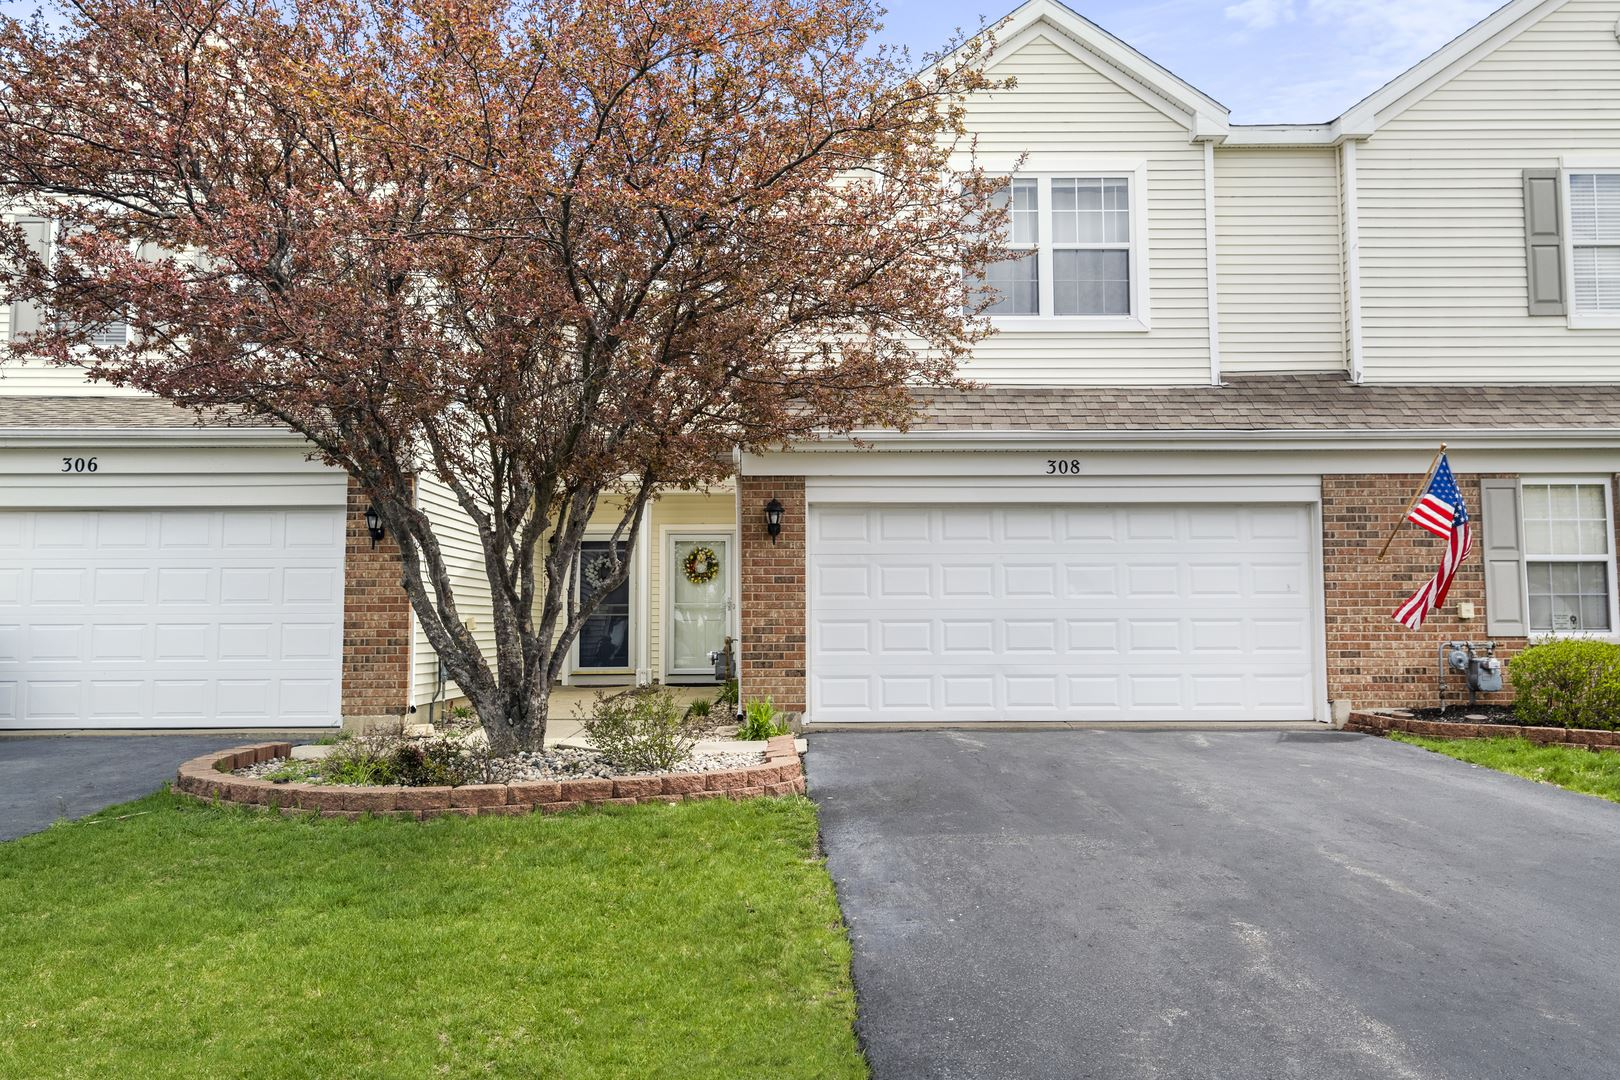 Photo of 308 Parkside Drive, Shorewood, IL 60404 (MLS # 11054664)